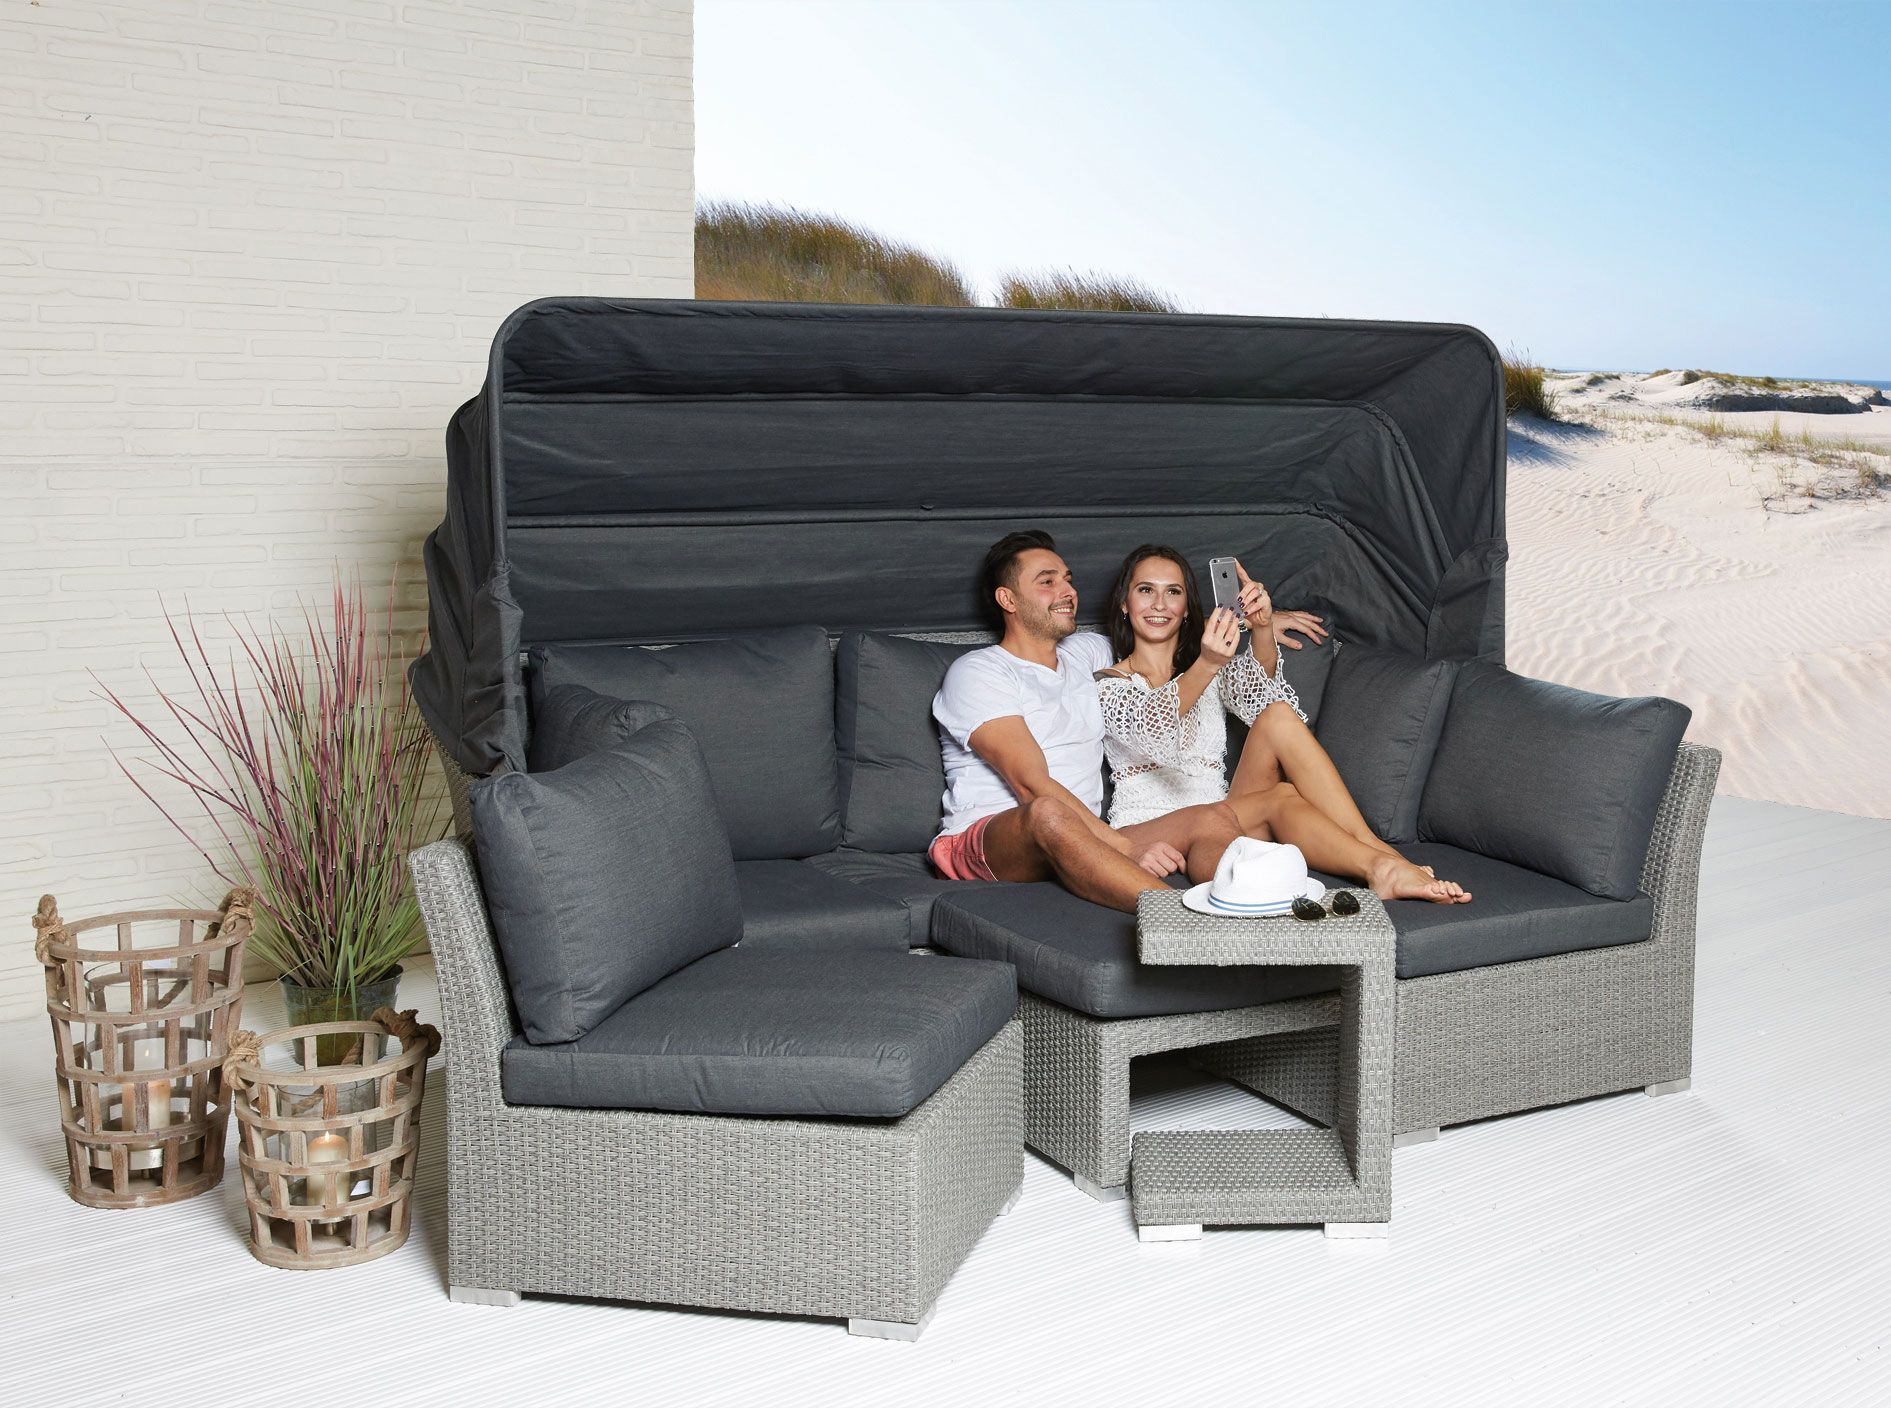 Sonneninsel Hawaii Lc Garden Xl Muschel Set Loungebank Modesto Relax Grau